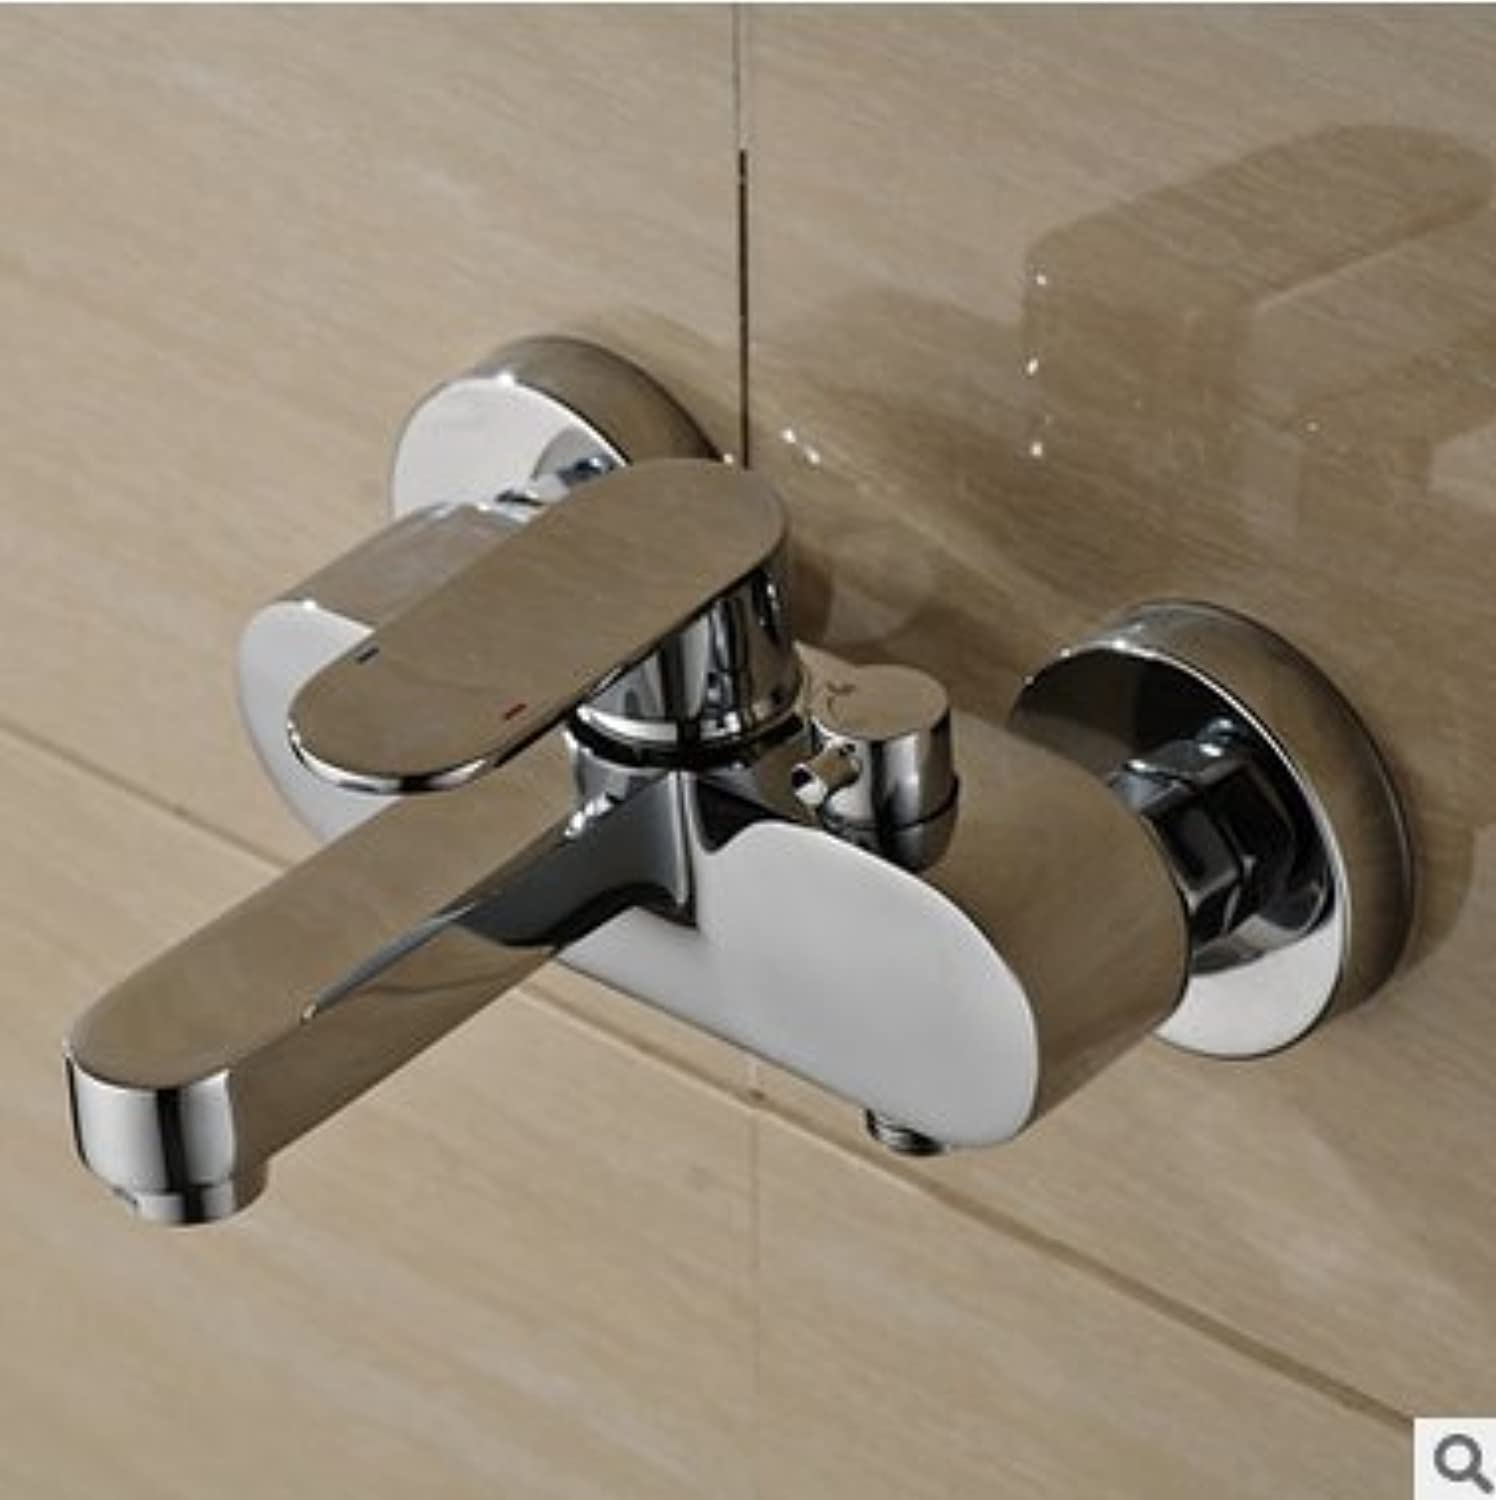 Diongrdk Bathroom Shower Faucet, All Copper Hot and Cold Water Mixing Valve, Bathroom Simple Sprinkler Suit, Wall Mounted.